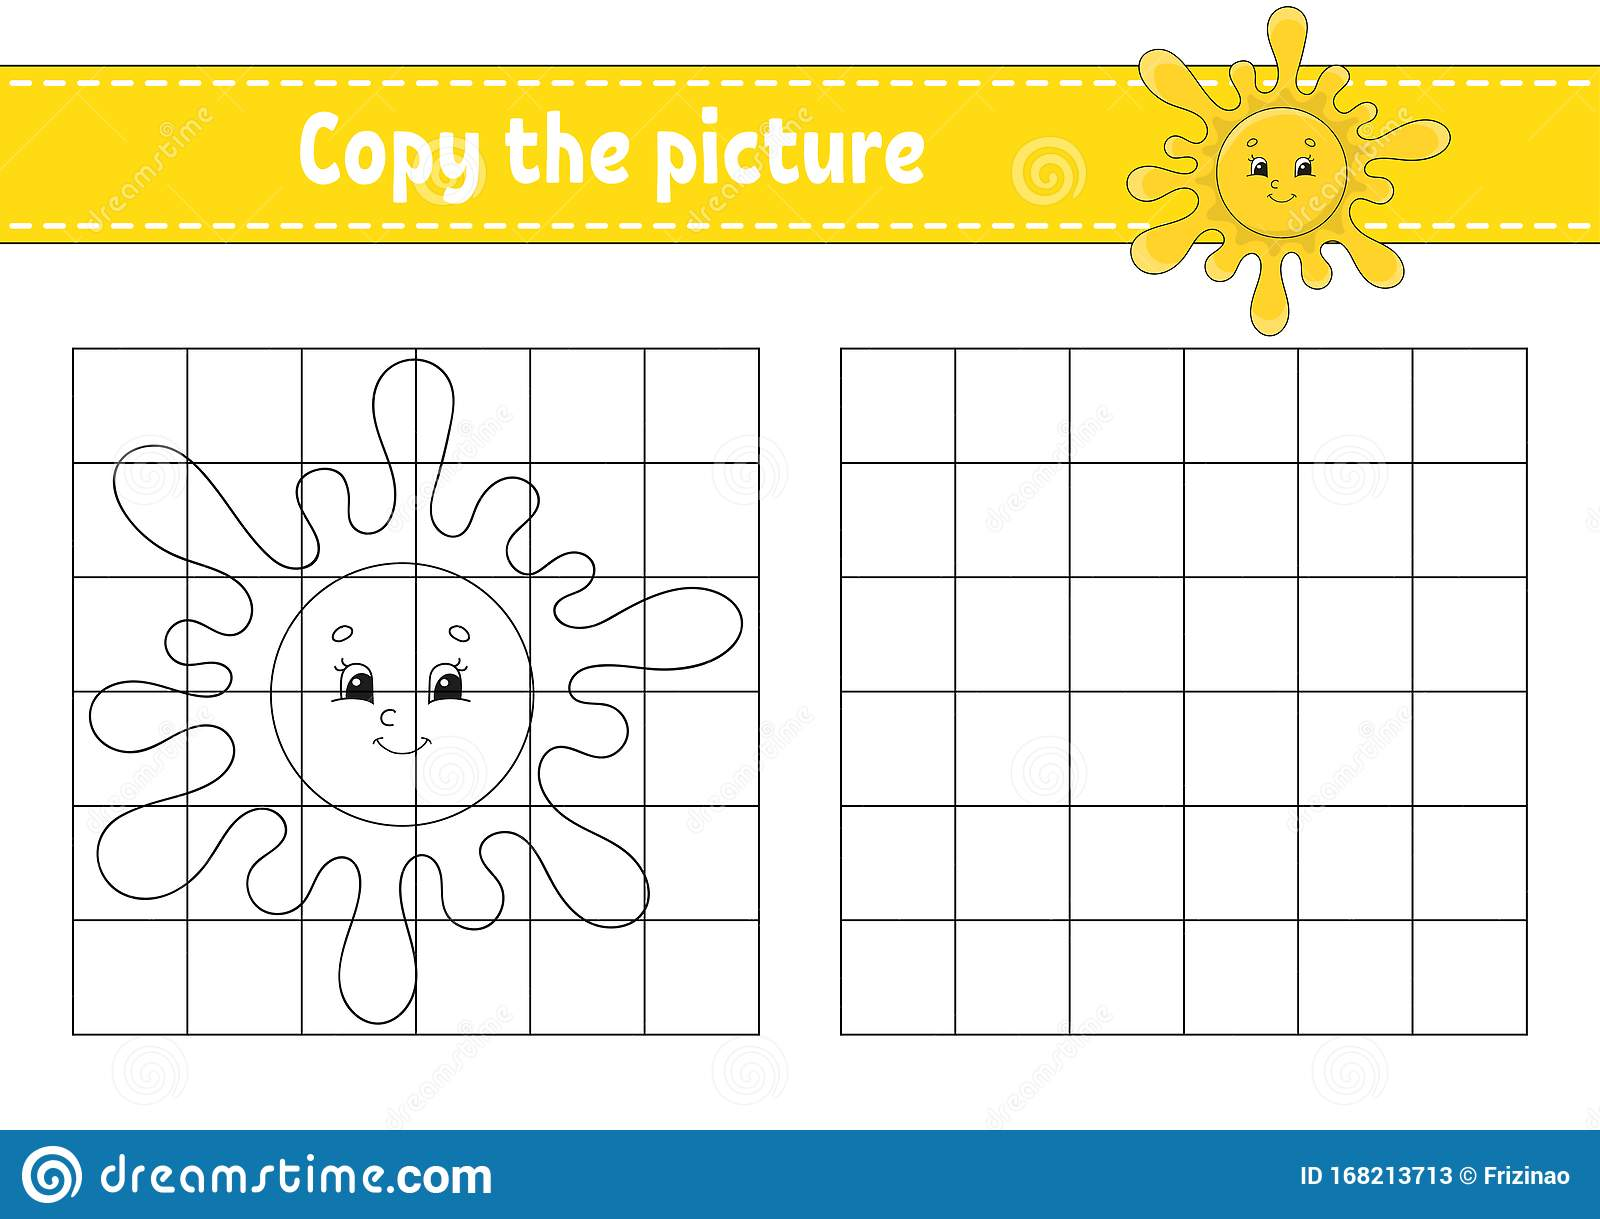 Cute Sun Copy The Picture Coloring Book Pages For Kids